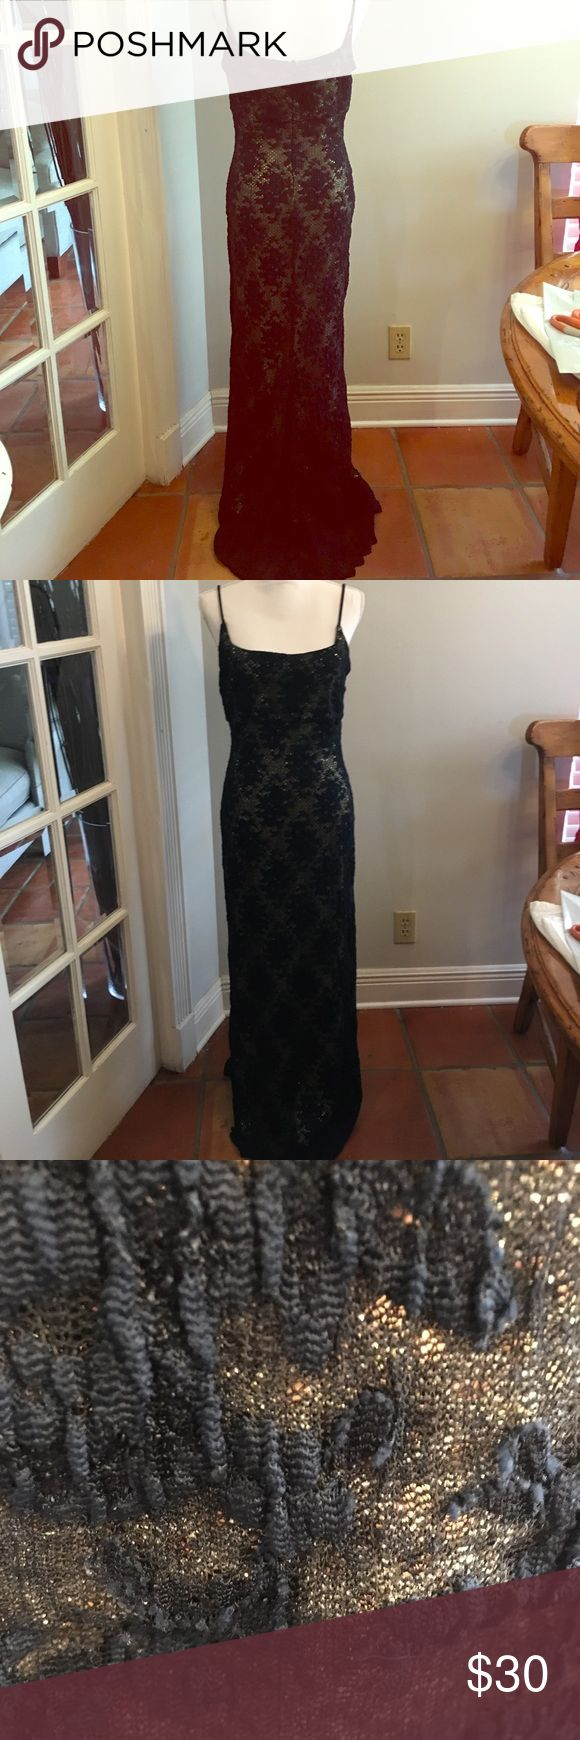 Navy and gold Special occasion dress size 12 Jessica McClintock stunning gown. Great for mother of the bride or black tie event. Excellent condition. Dress is navy blue lace with a gold underdress lining. Stretchy and stunning!  Gold shimmers through in the light. Jessica McClintock Dresses Prom